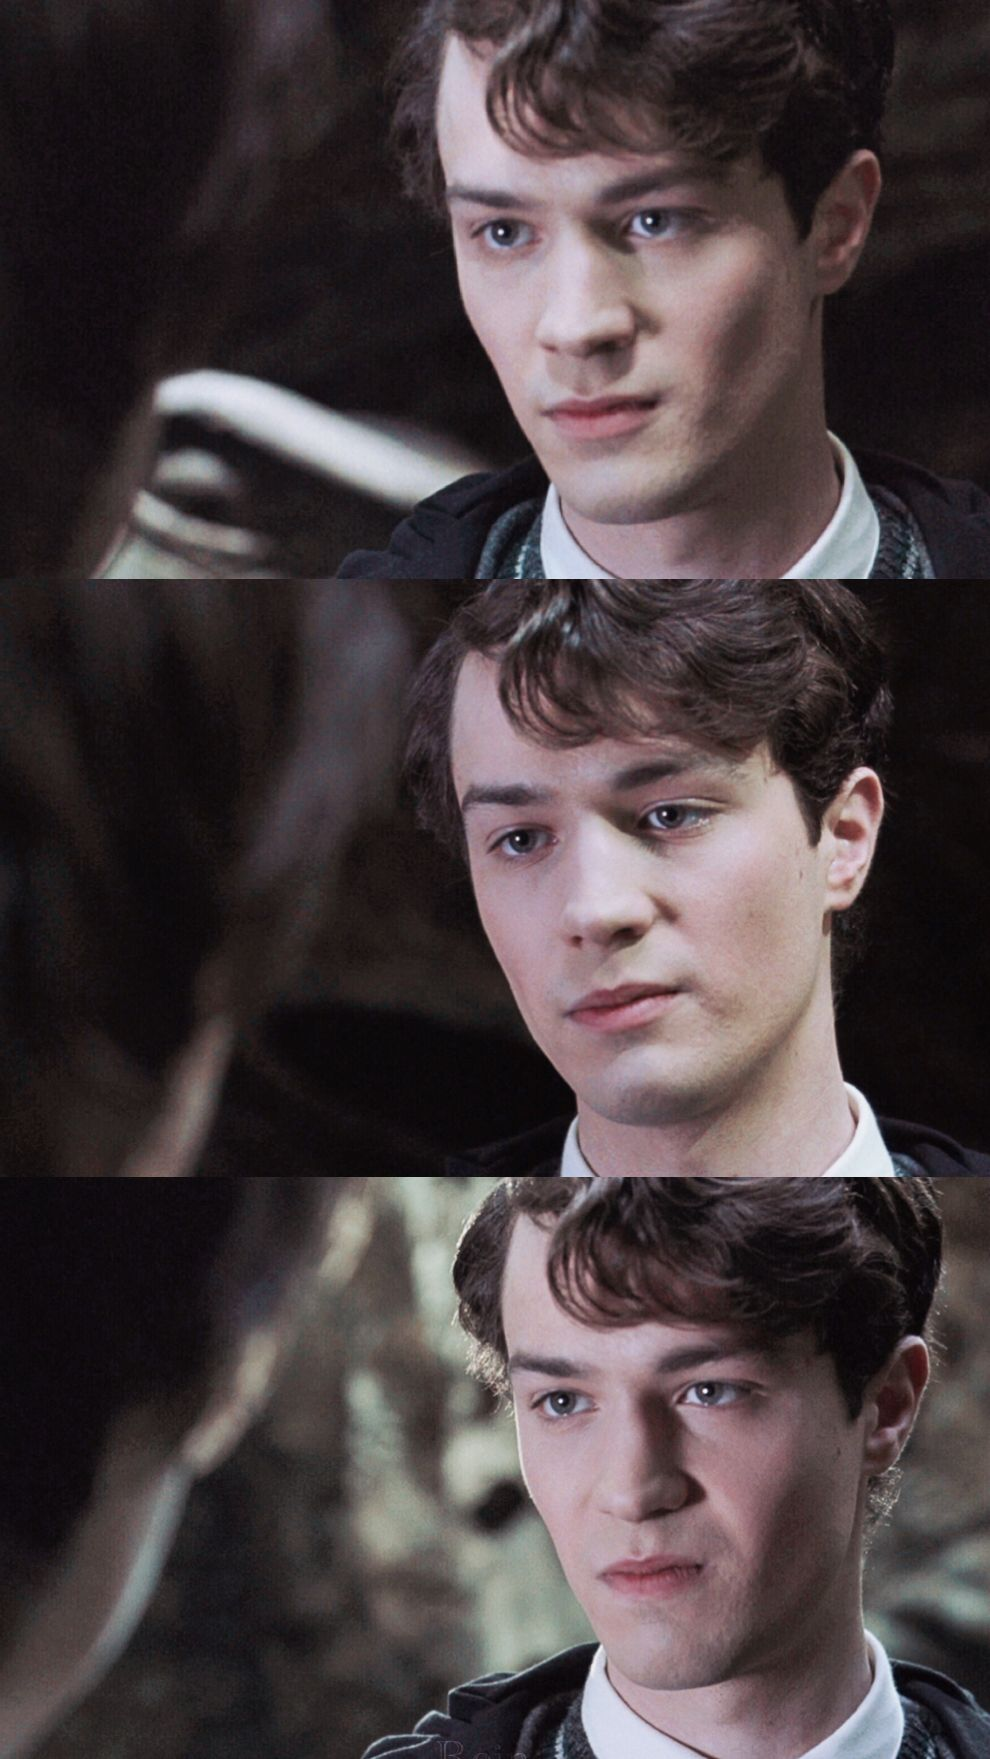 Pin By Asley Vega On Harry Potter In 2020 Young Tom Riddle Harry Potter Aesthetic Tom Riddle